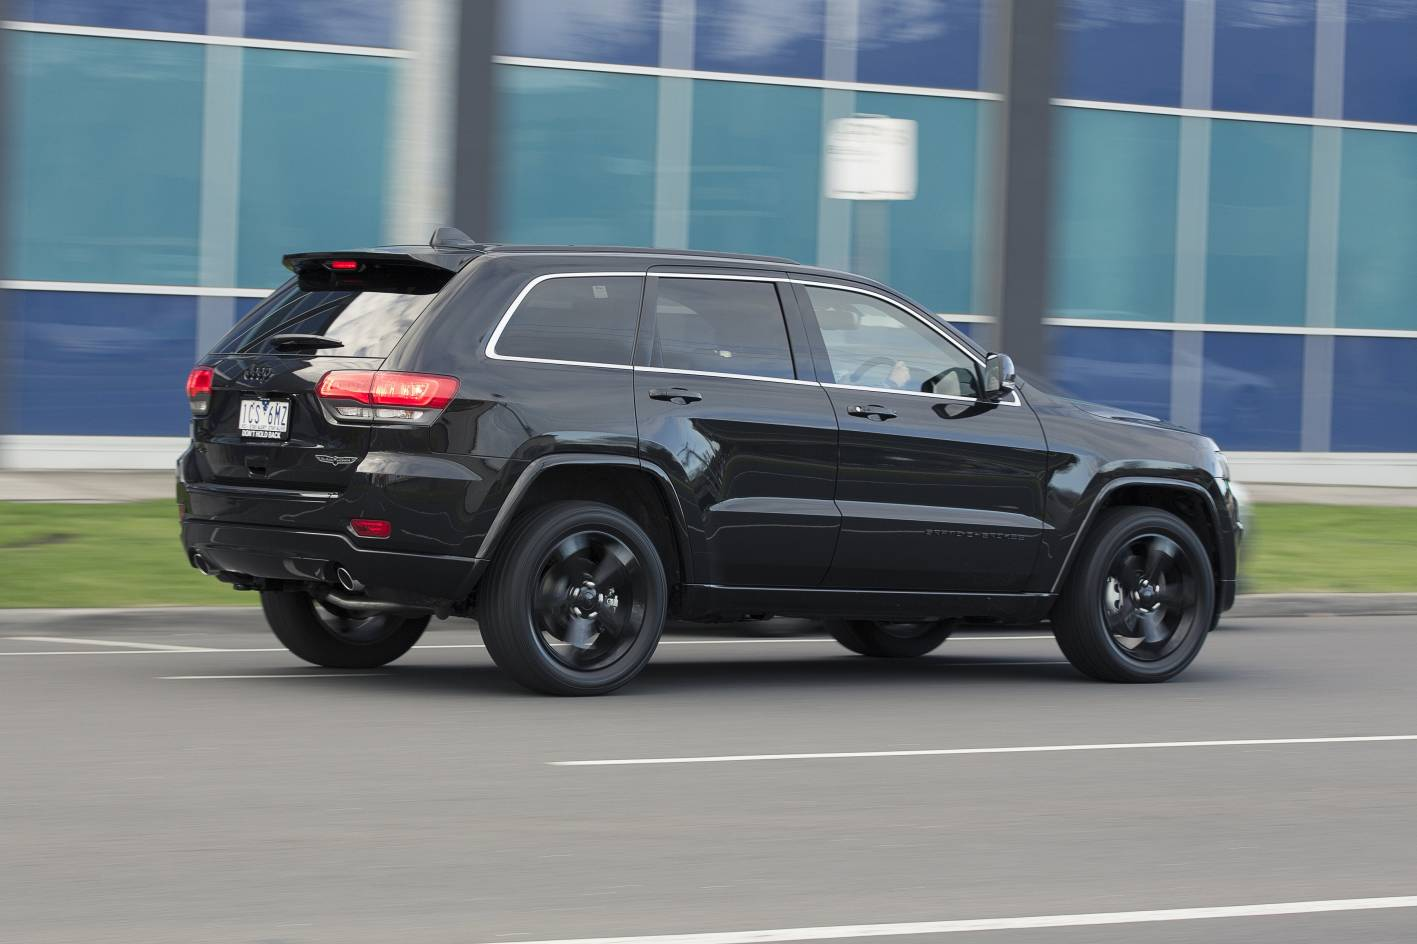 Jeep Cars - News: Blackhawk Edition models to boost range ...